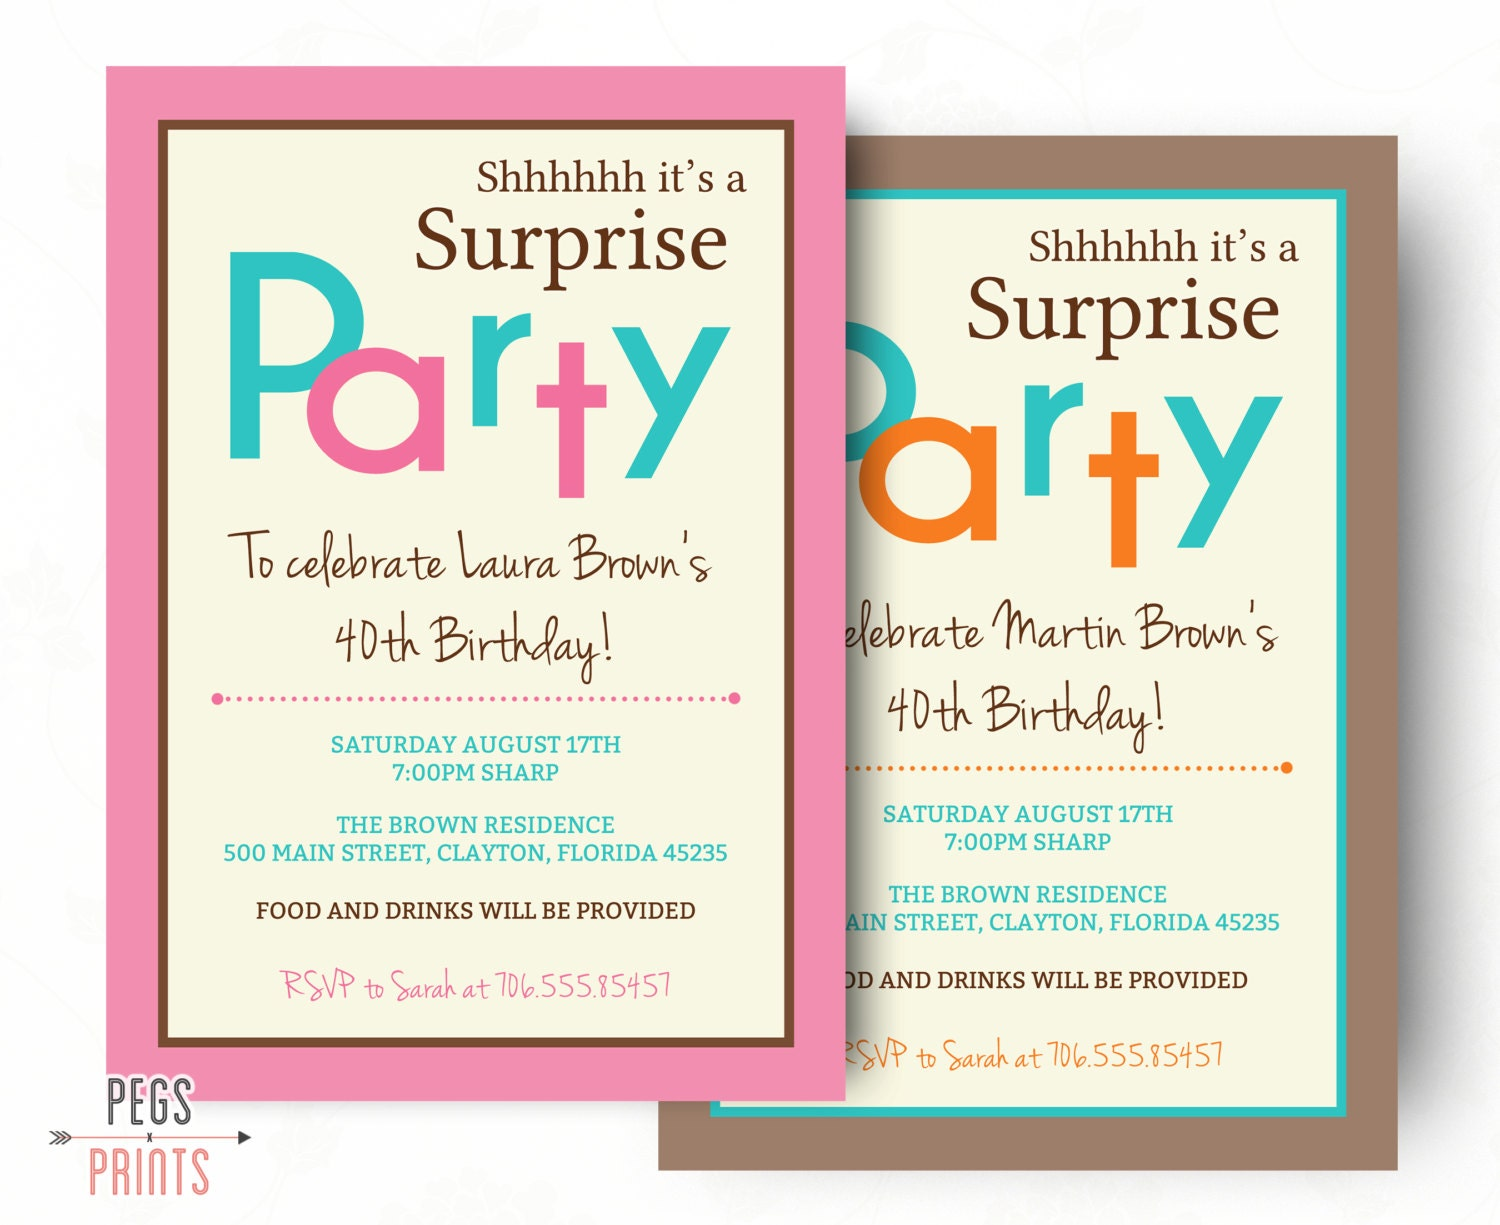 Surprise Birthday Invitation Printable Surprise Birthday - Invitations for 60th birthday party templates